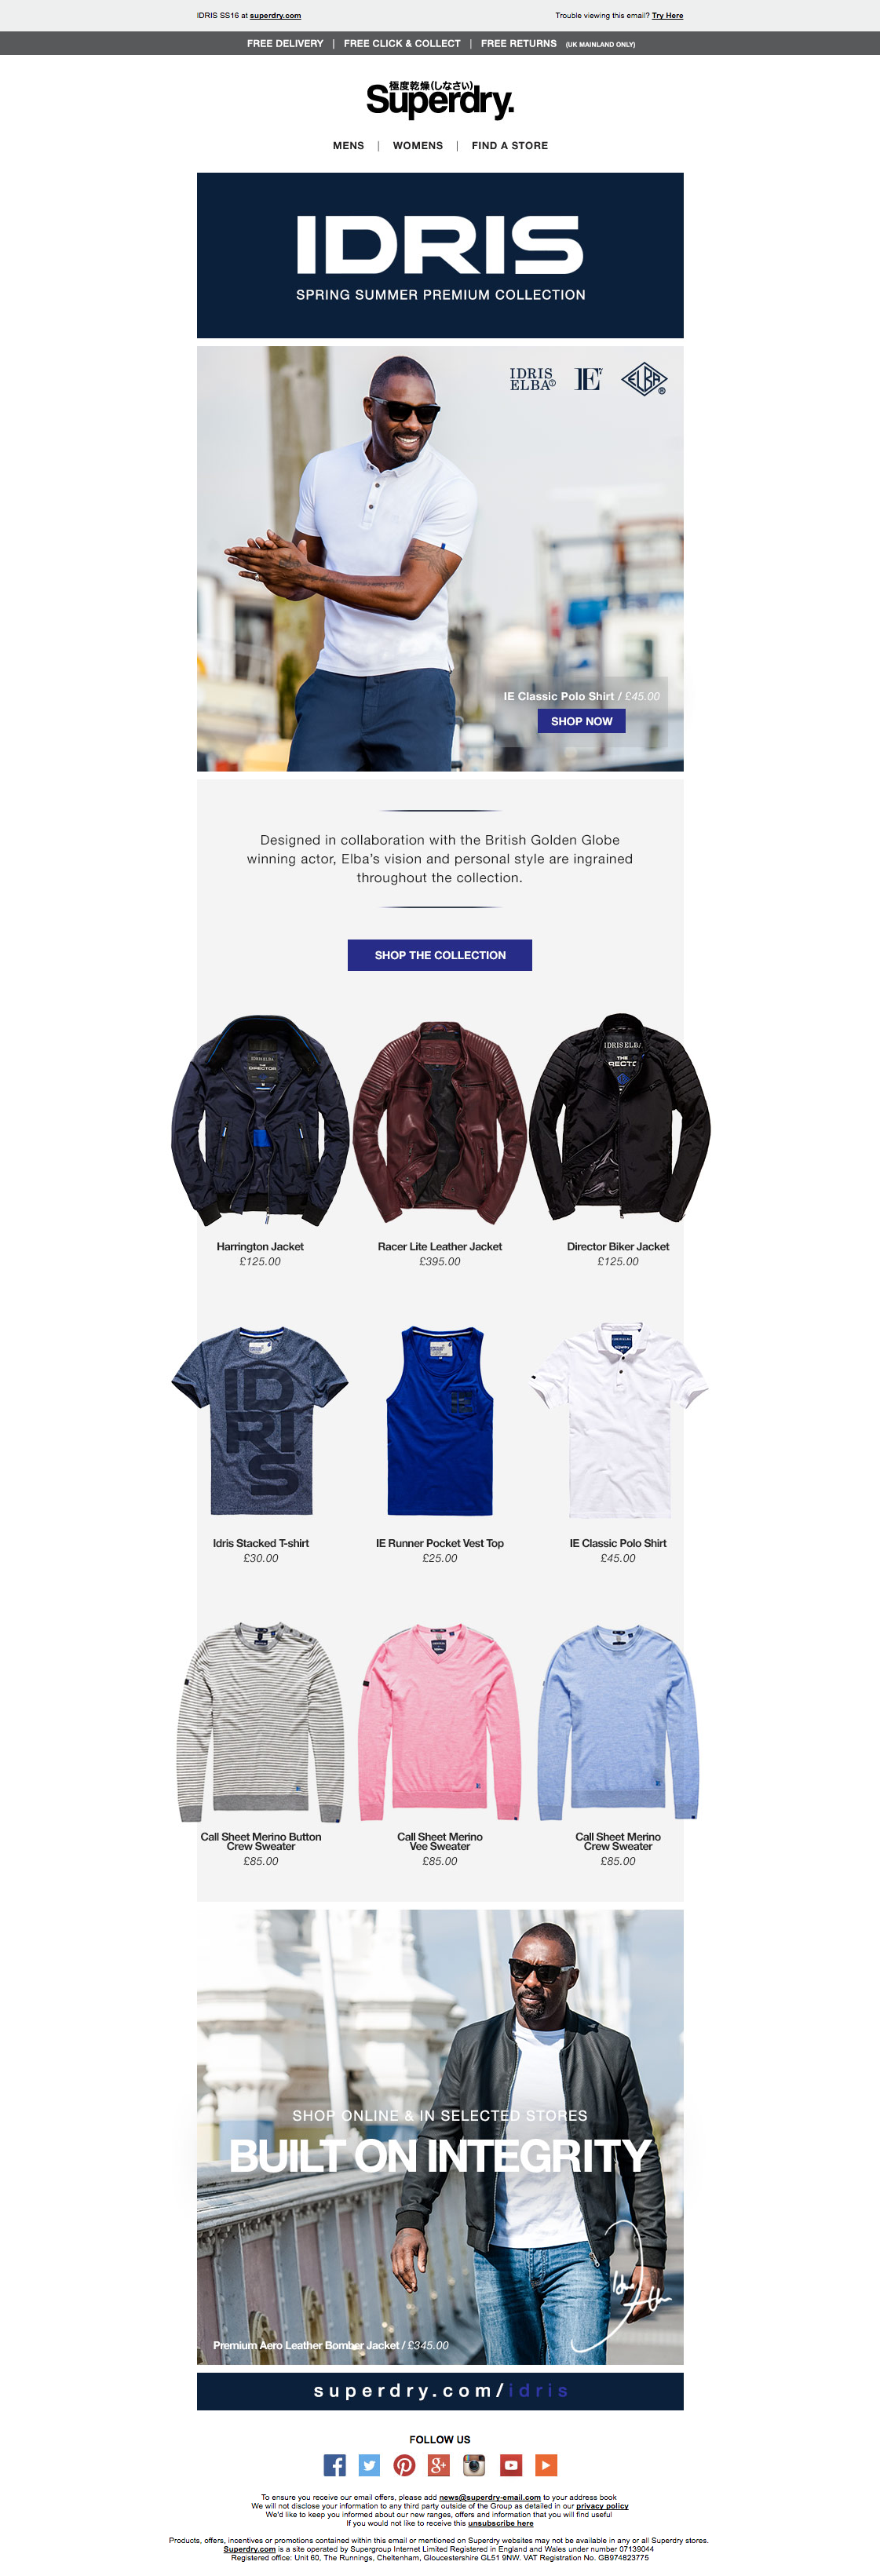 Superdry IDRIS SS16 Email / Newsletter Design